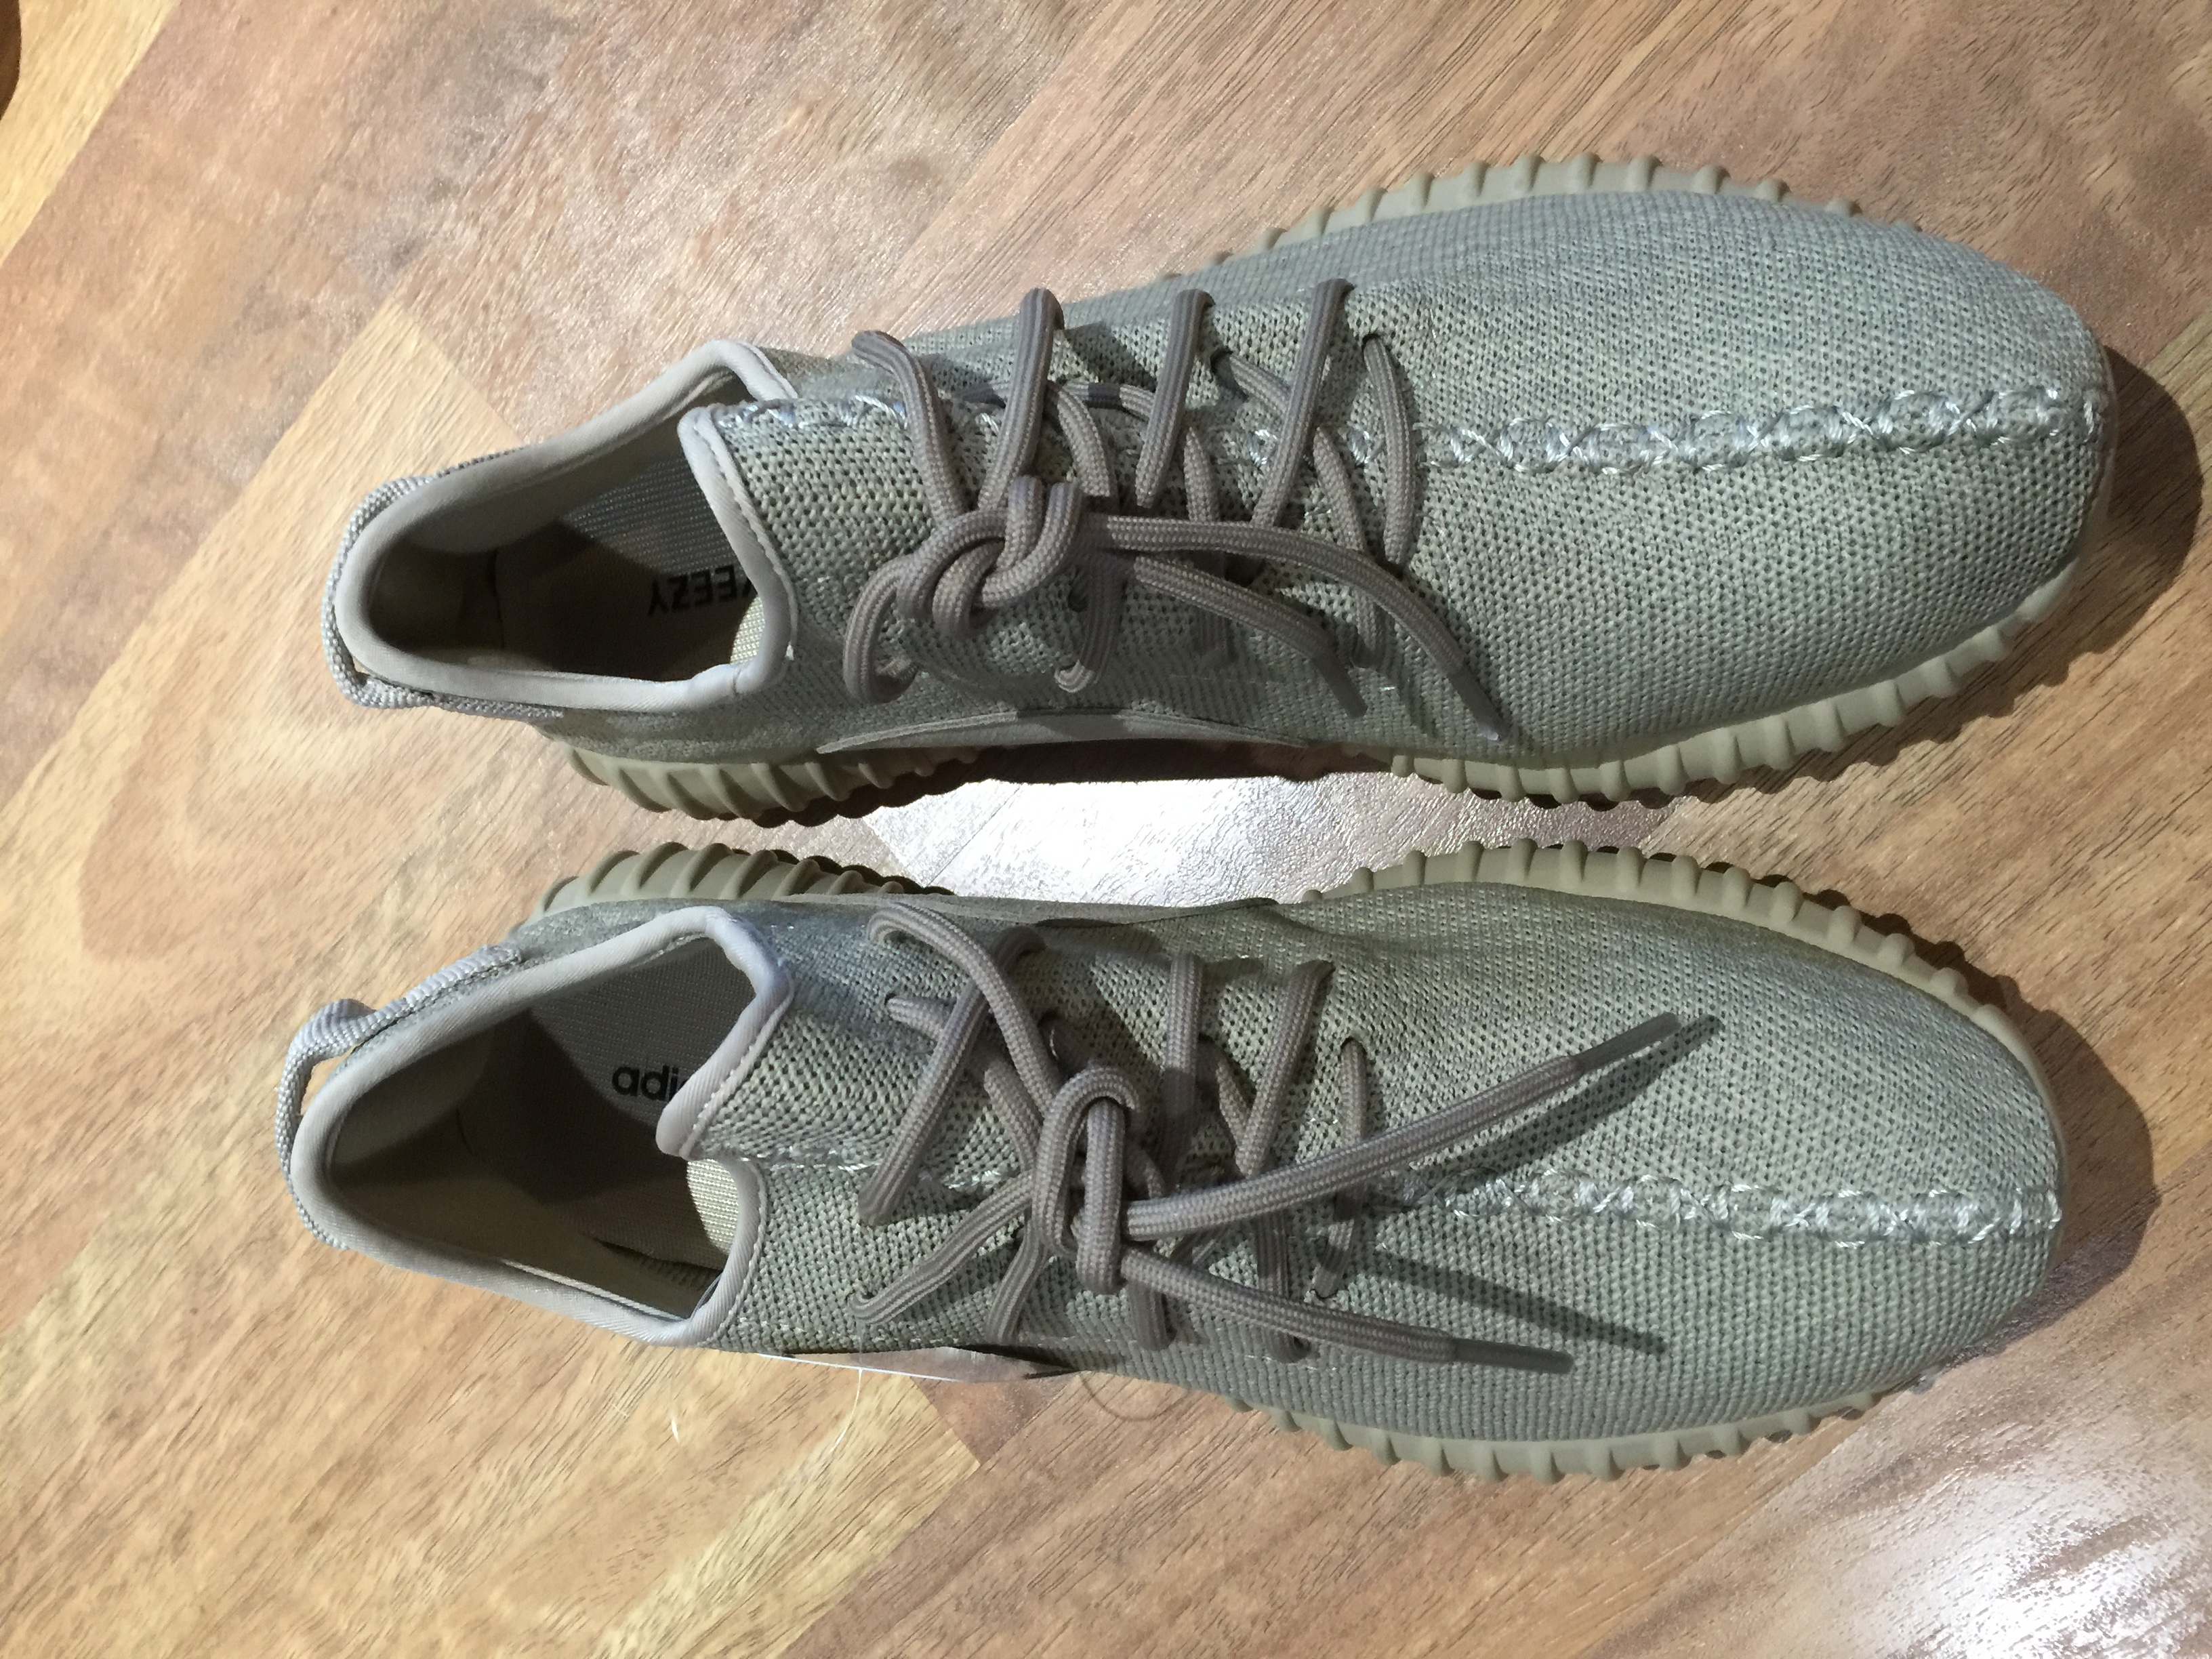 1c4bdb8518f53 Customer feedback for this store 1 past order · 0 customer ratings.  Details  Shipping   FAQs. UA Yeezy 350 Boost Oxford Tan ...